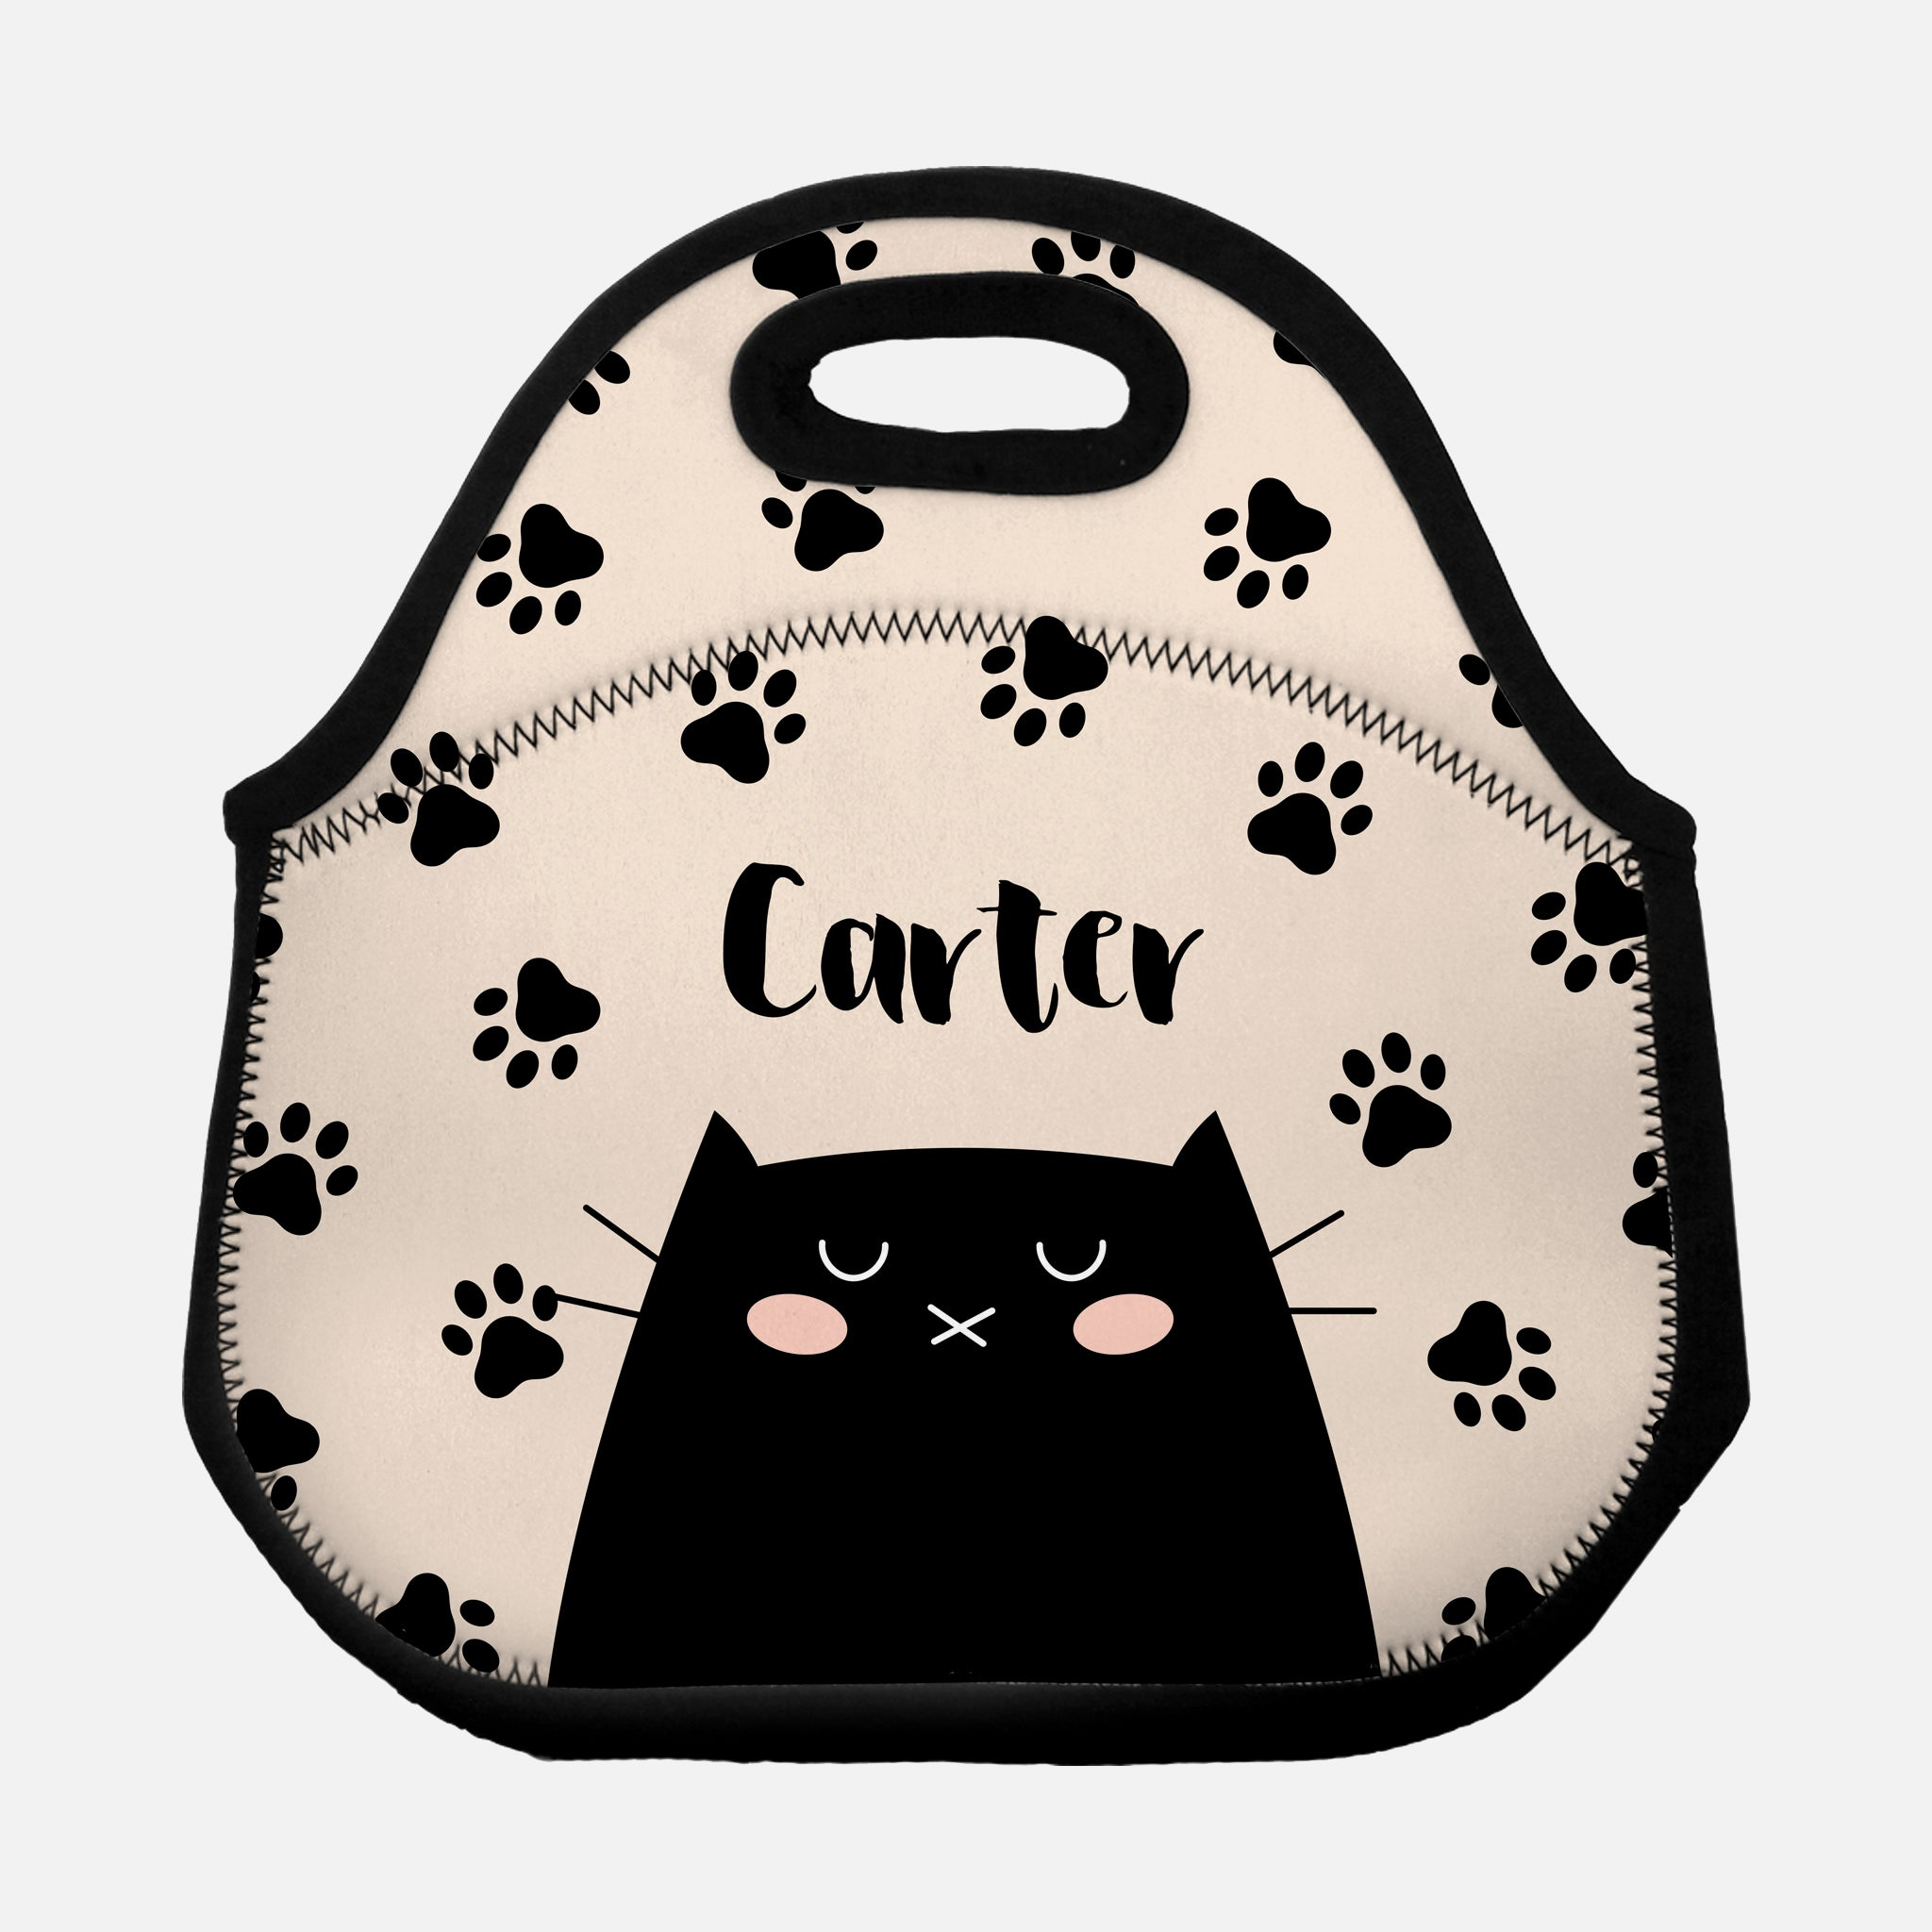 Black Cat Paw Prints Pattern Beige Personalized Name Lunch Tote Bag Neoprene Insulated - By Happy Cat Prints